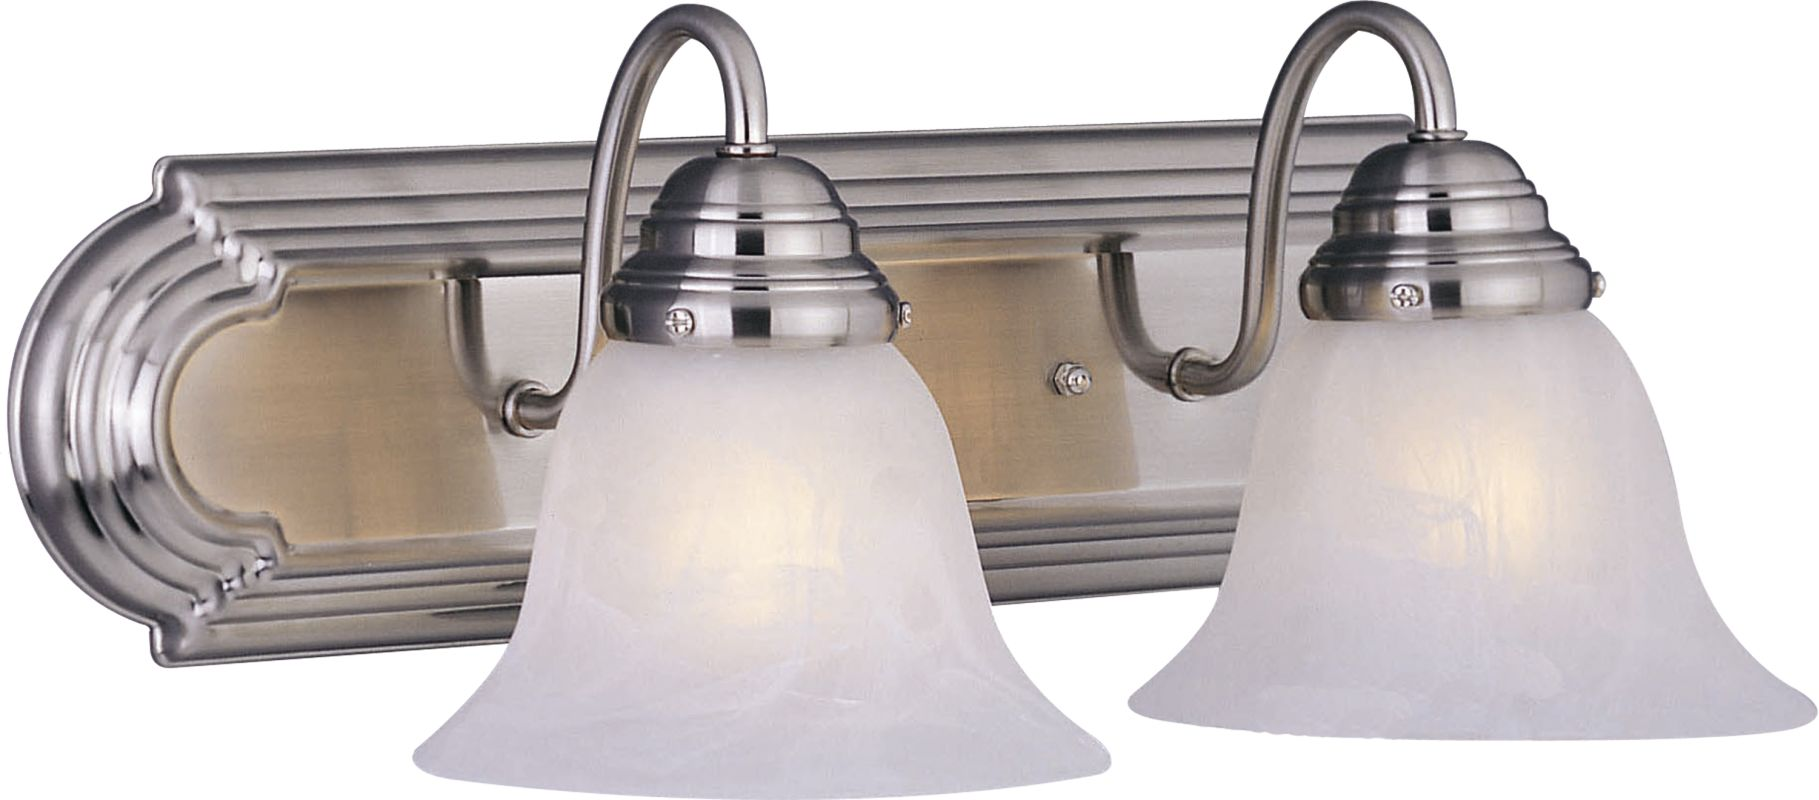 "Maxim 85812 2 Light 18"" Wide Bathroom Fixture from the Essentials EE"